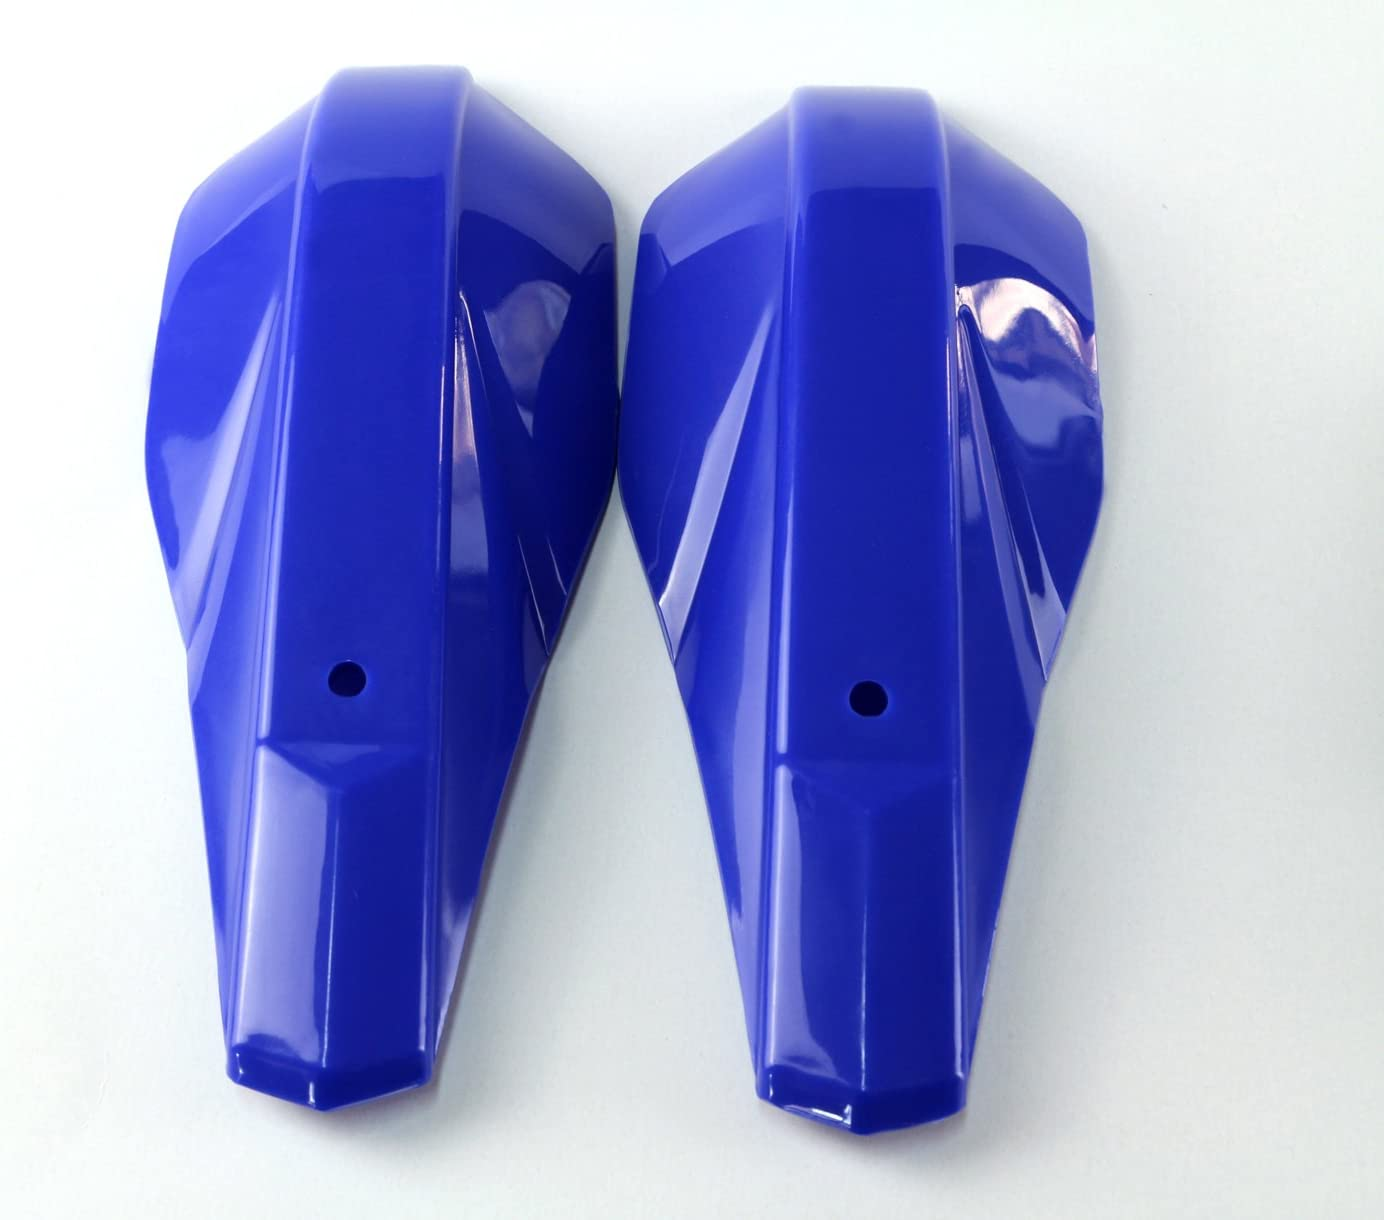 Motorcycle Plastic Hand Guards Handguard Protection for for Motocross Enduro Supermoto ATV Off-road